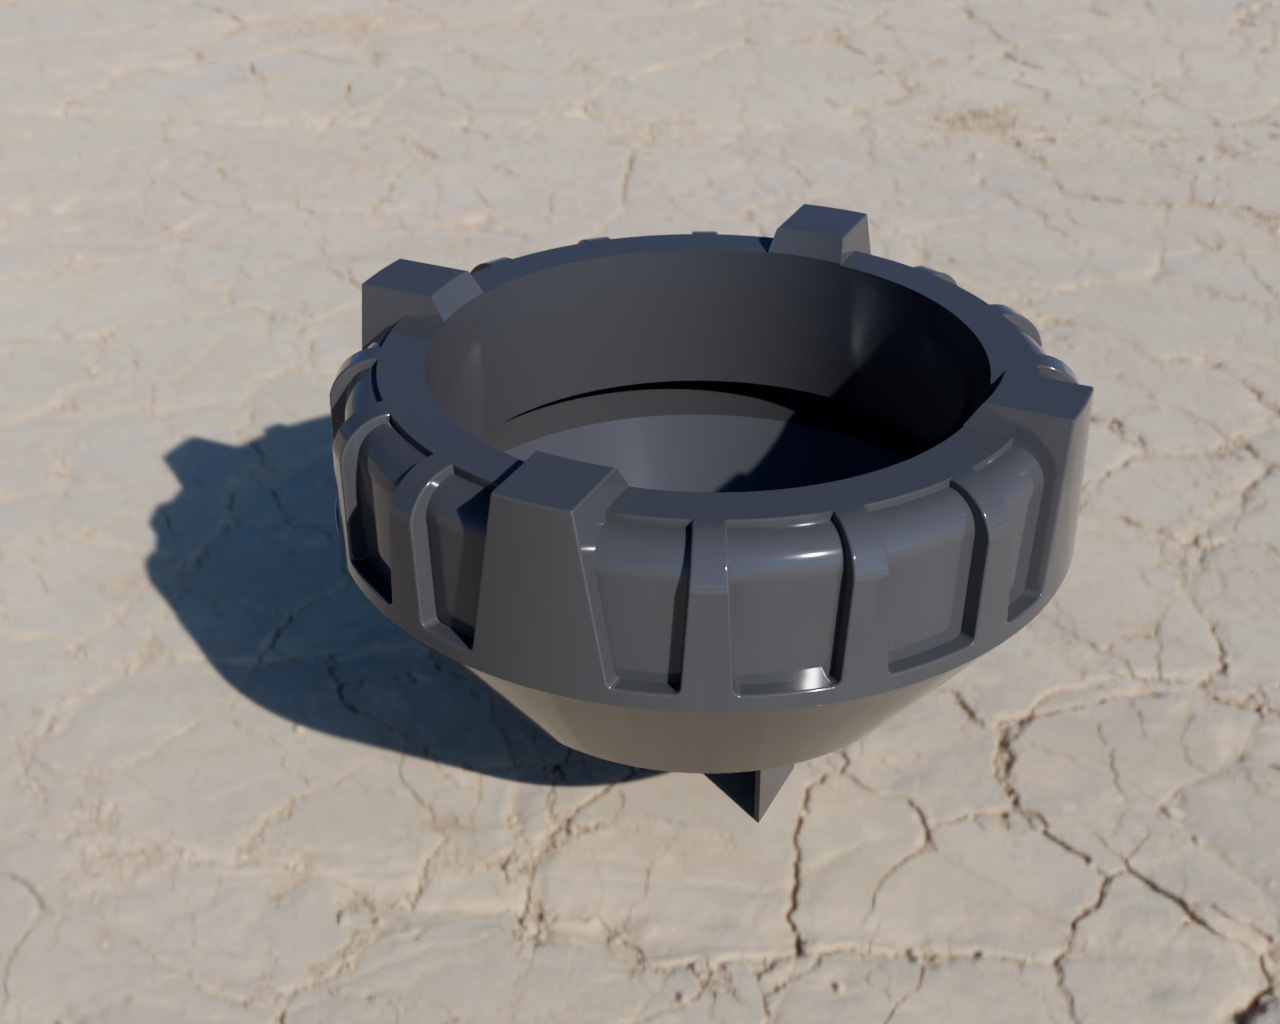 191X_Promotedv5Base_2019-Aug-04_06-40-32AM-000_CustomizedView4631733480.png